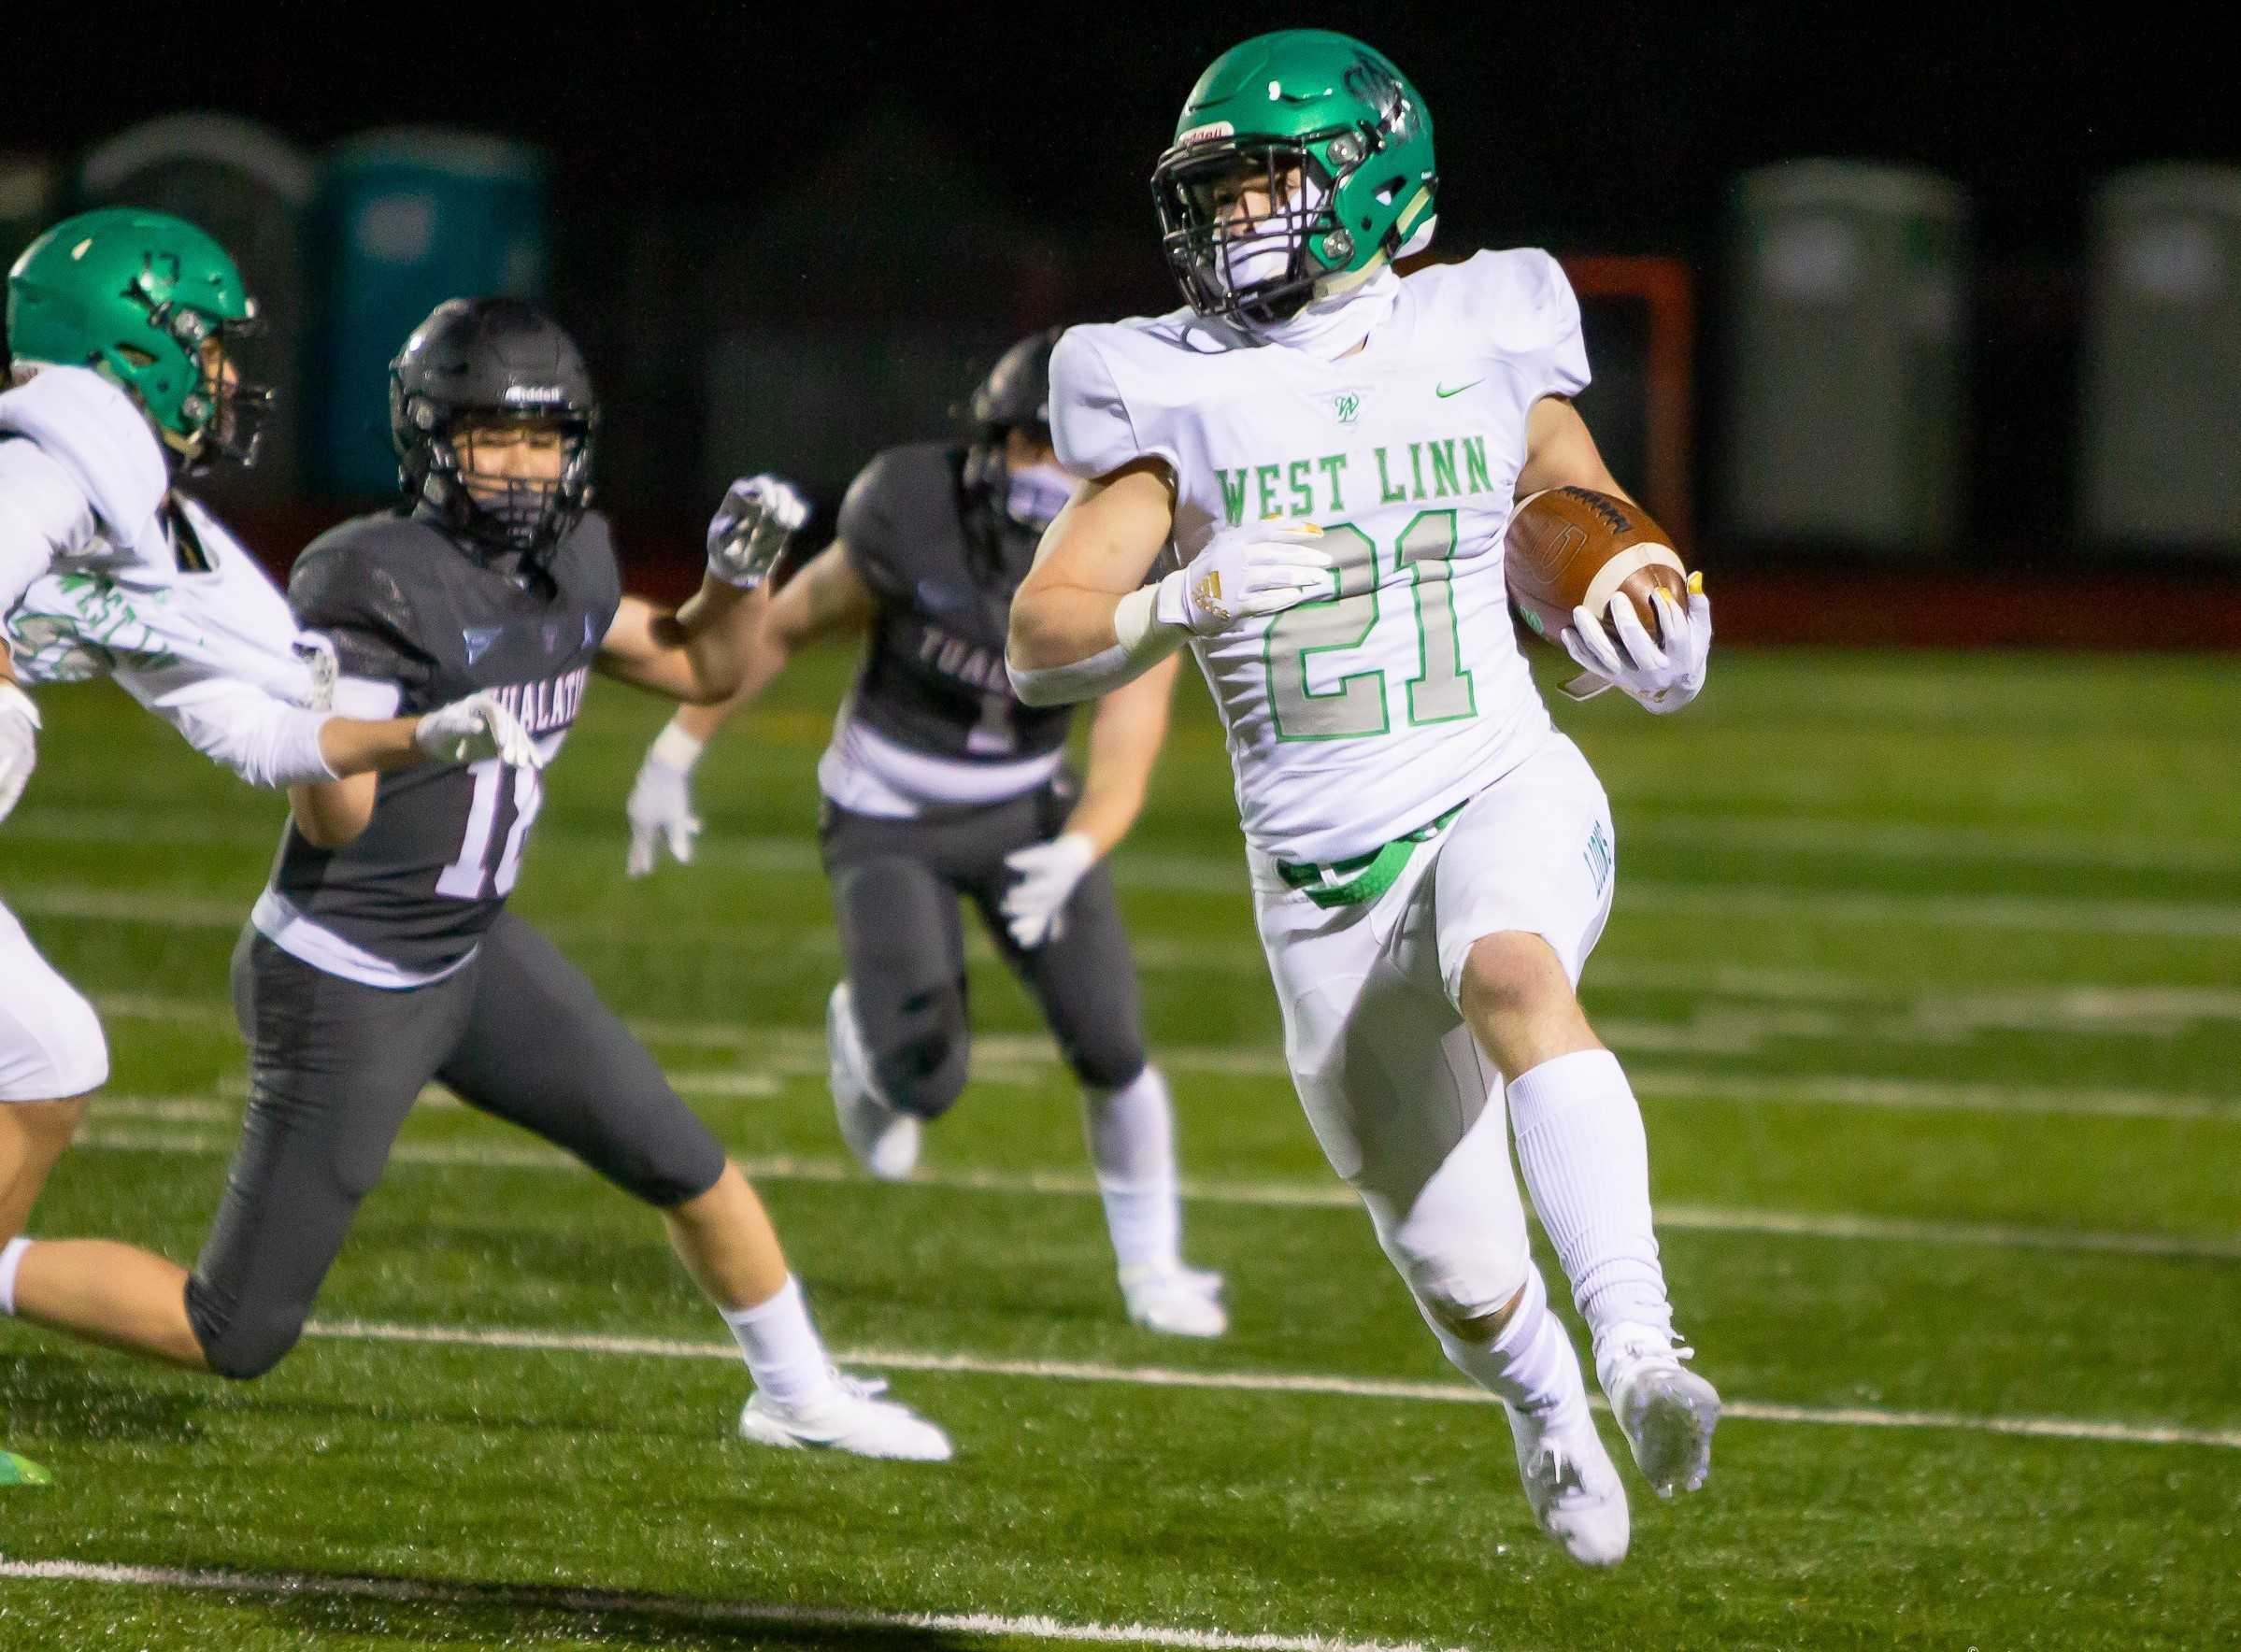 West Linn's Gavin Haines, who plans to walk on at Oregon State, has rushed for six touchdowns. (Photo by Brad Cantor)